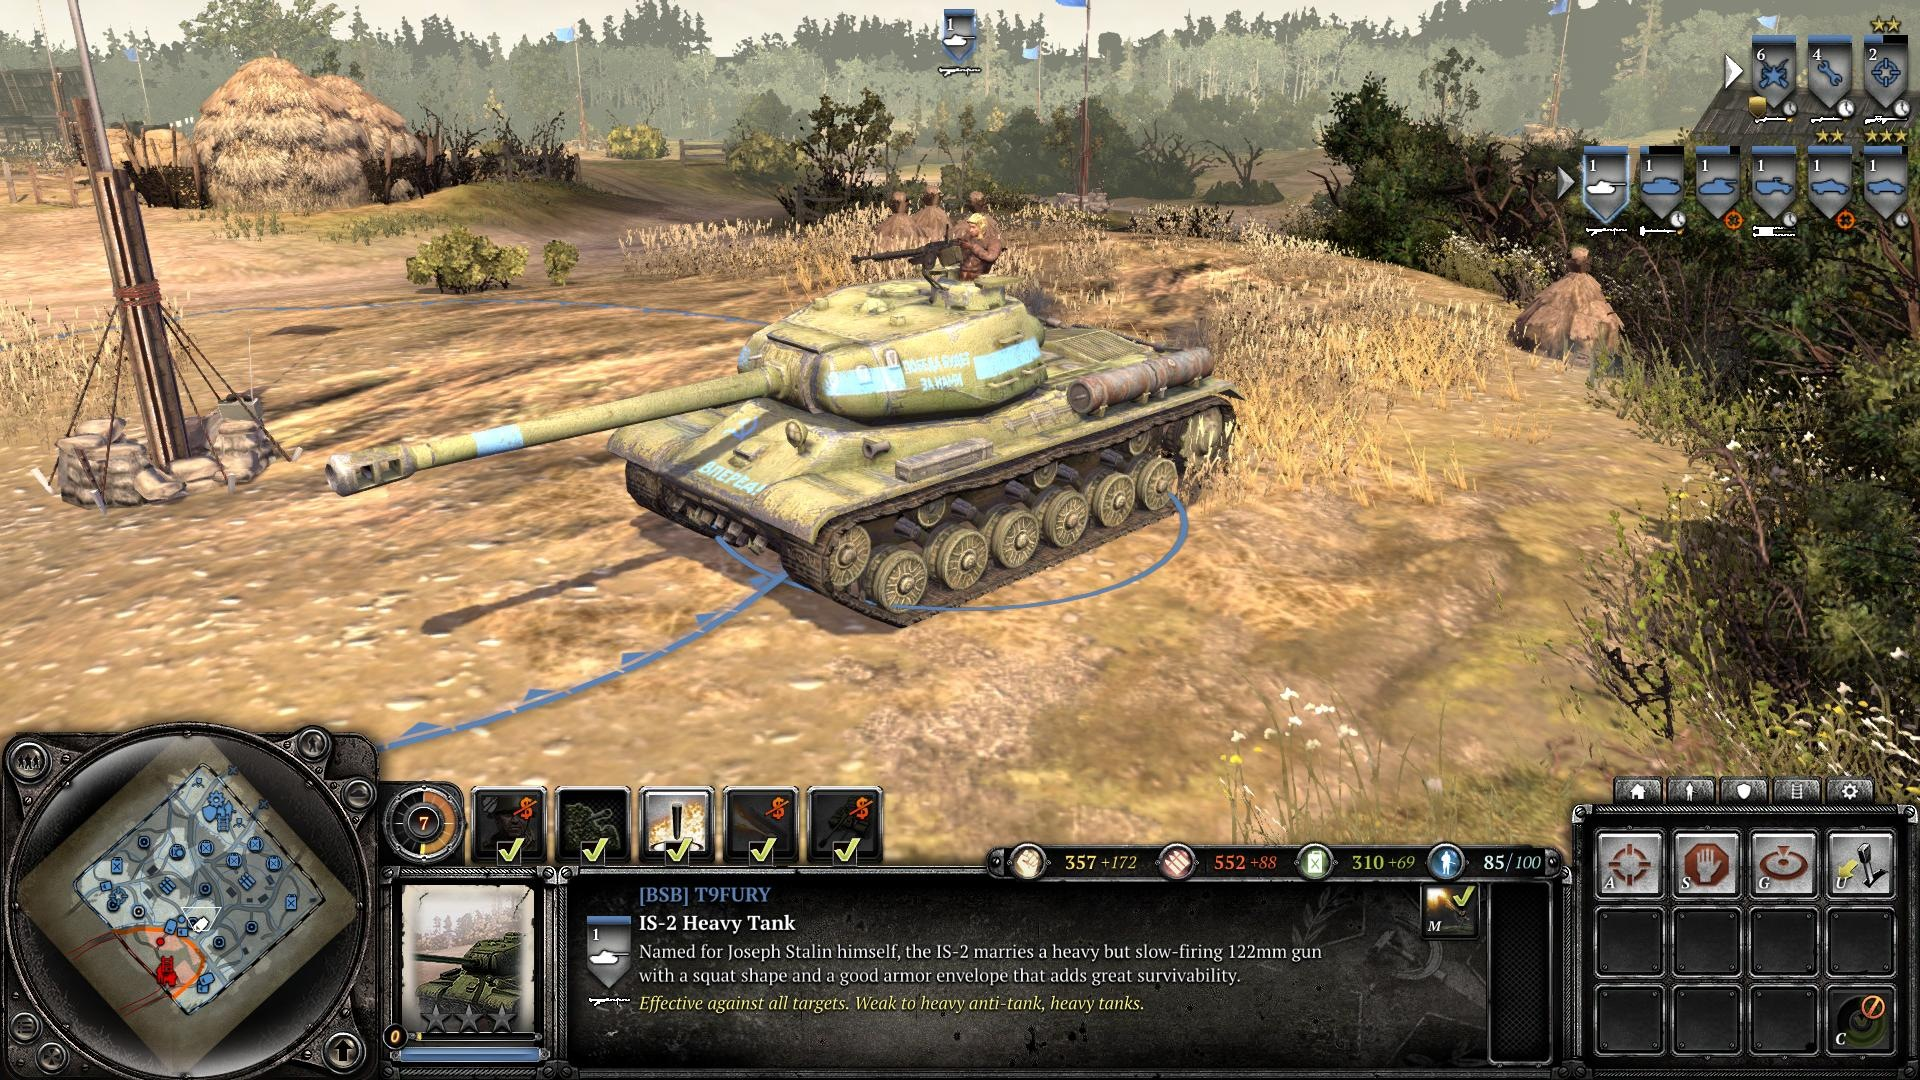 Company Of Heroes 2 Pt 3 Review Of Russian Units